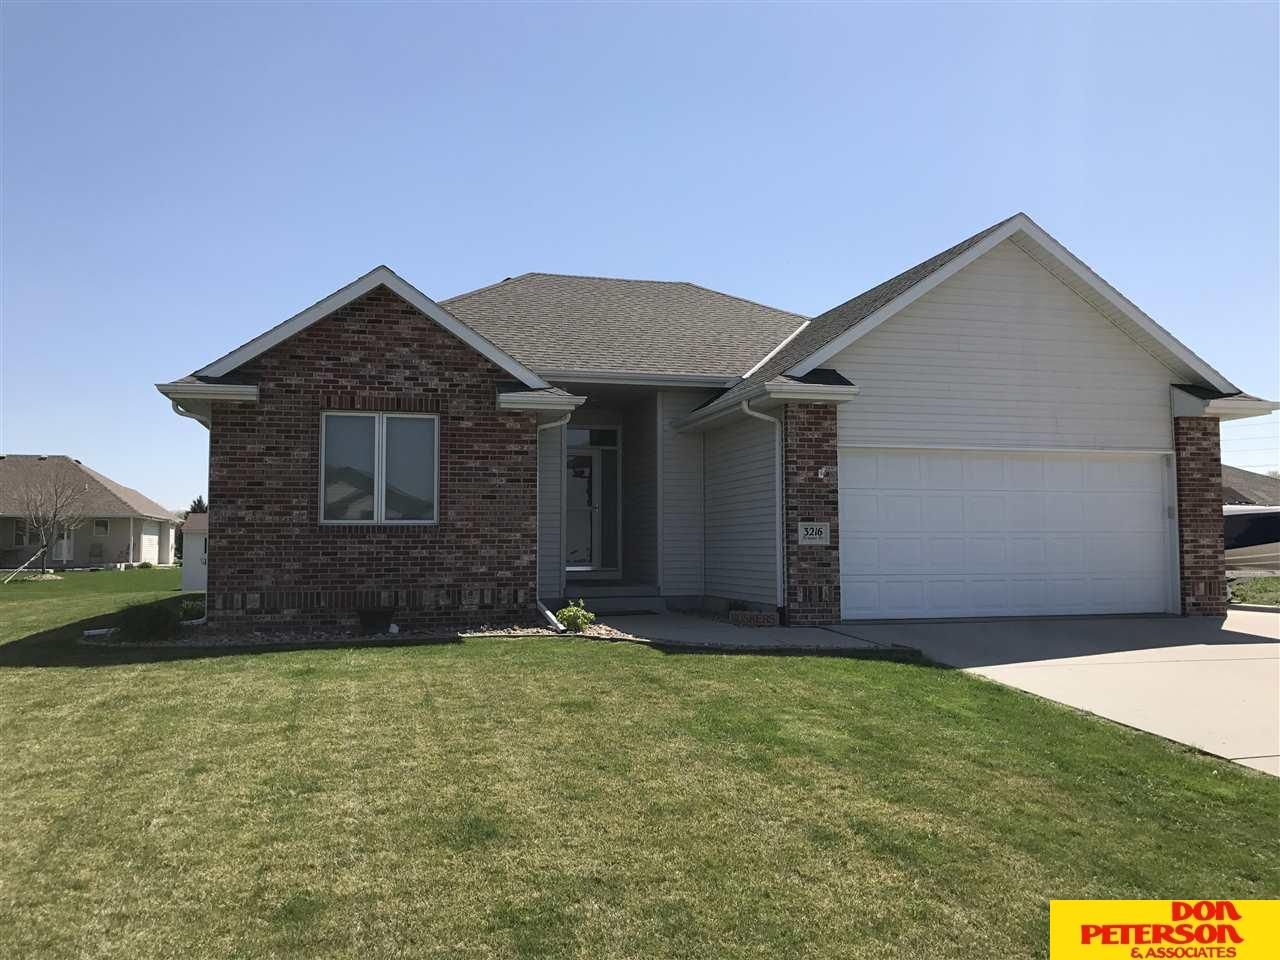 Photo of 3216 N Armour Drive  Fremont  NE